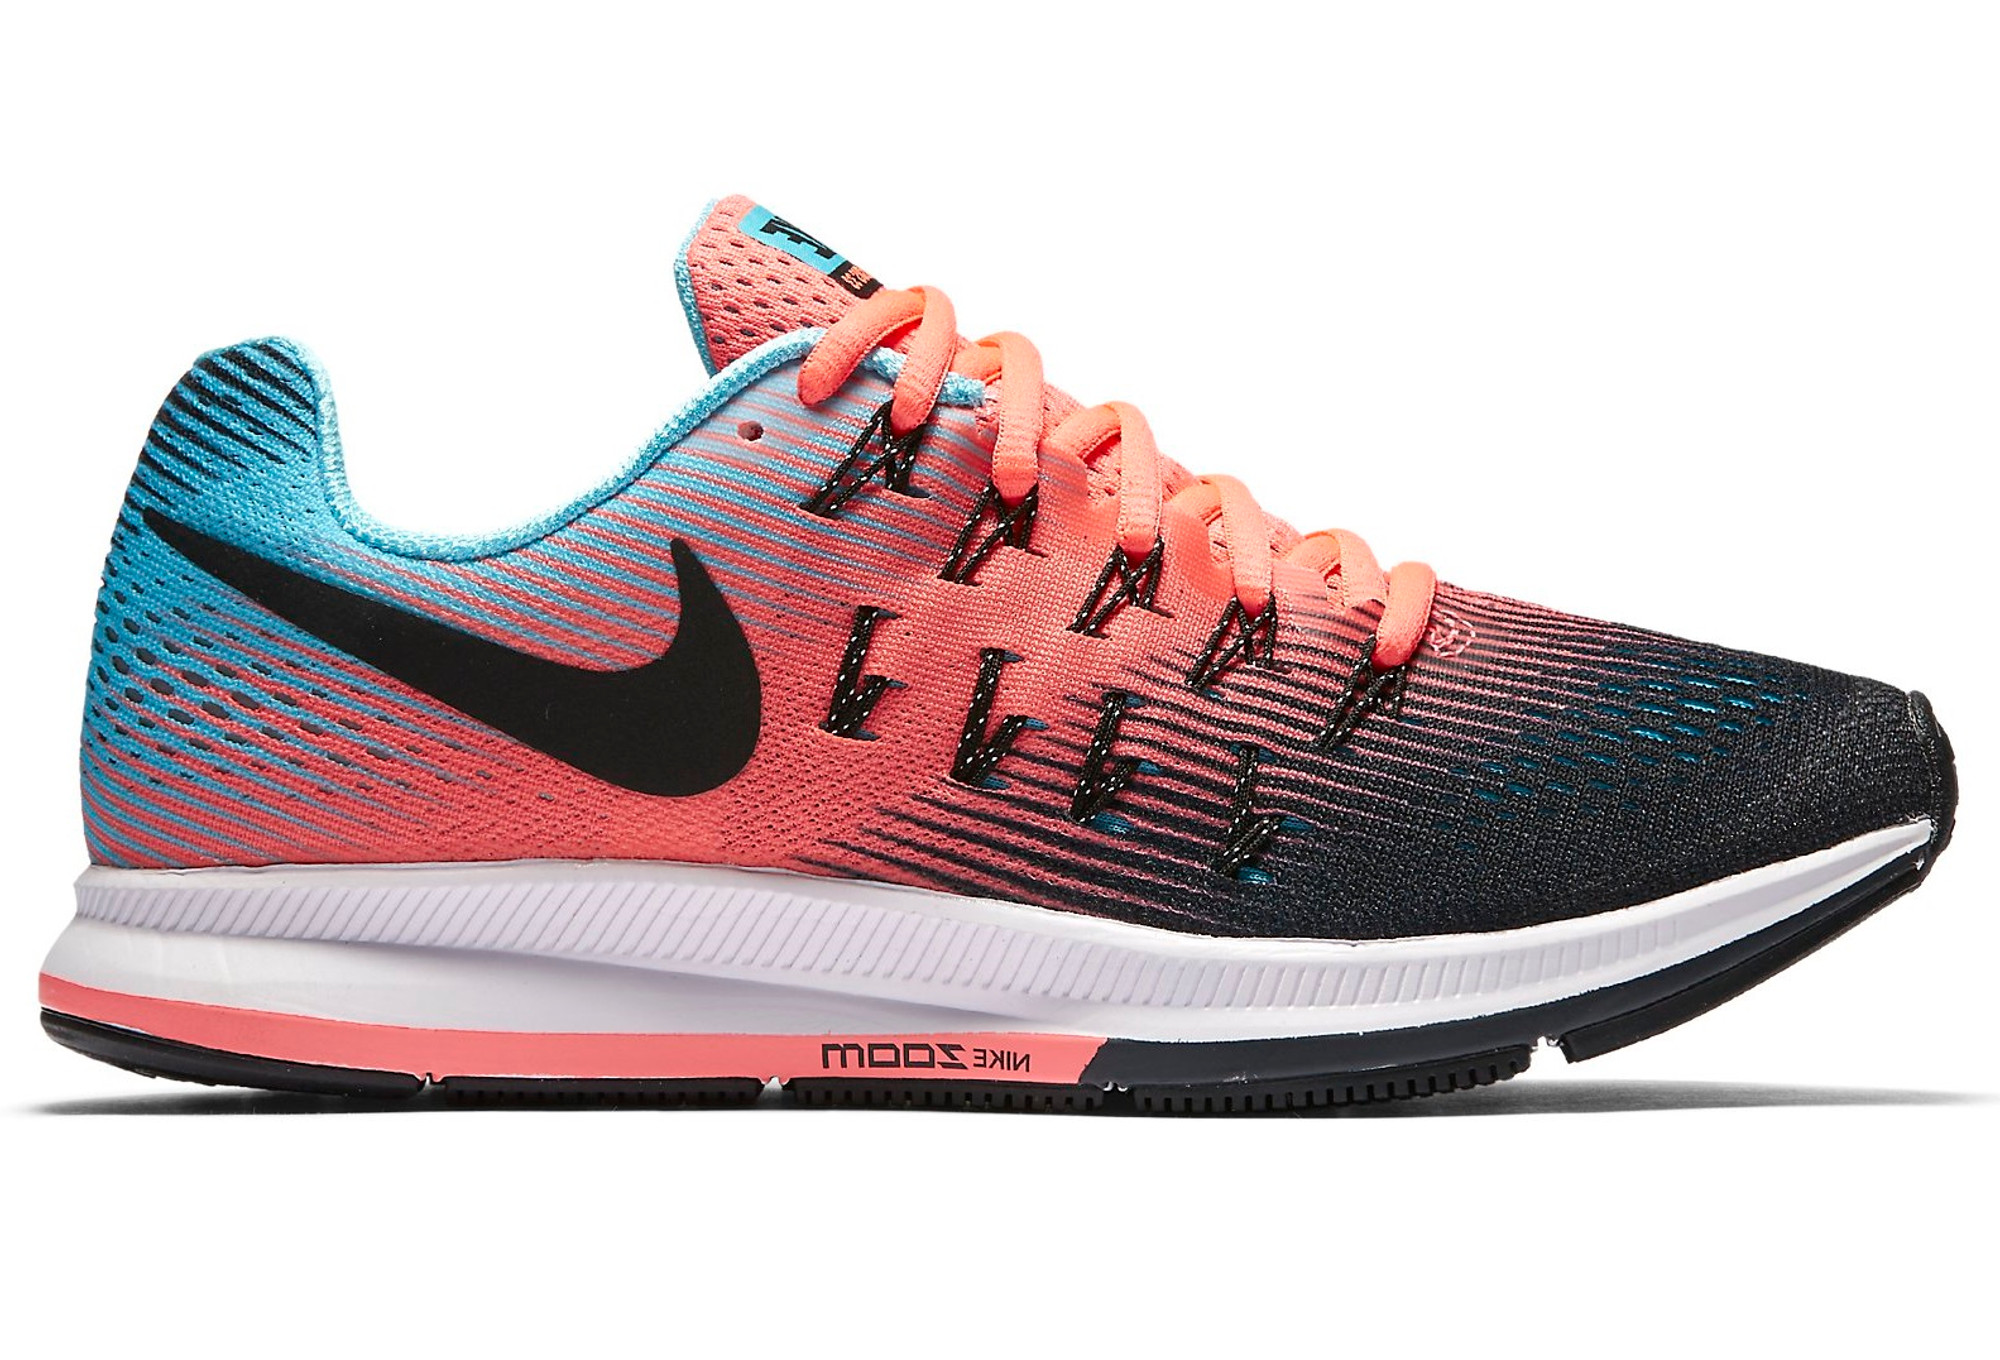 on wholesale get cheap retail prices Nike AIR ZOOM PEGASUS 33 Bleu Rose Noir Femme